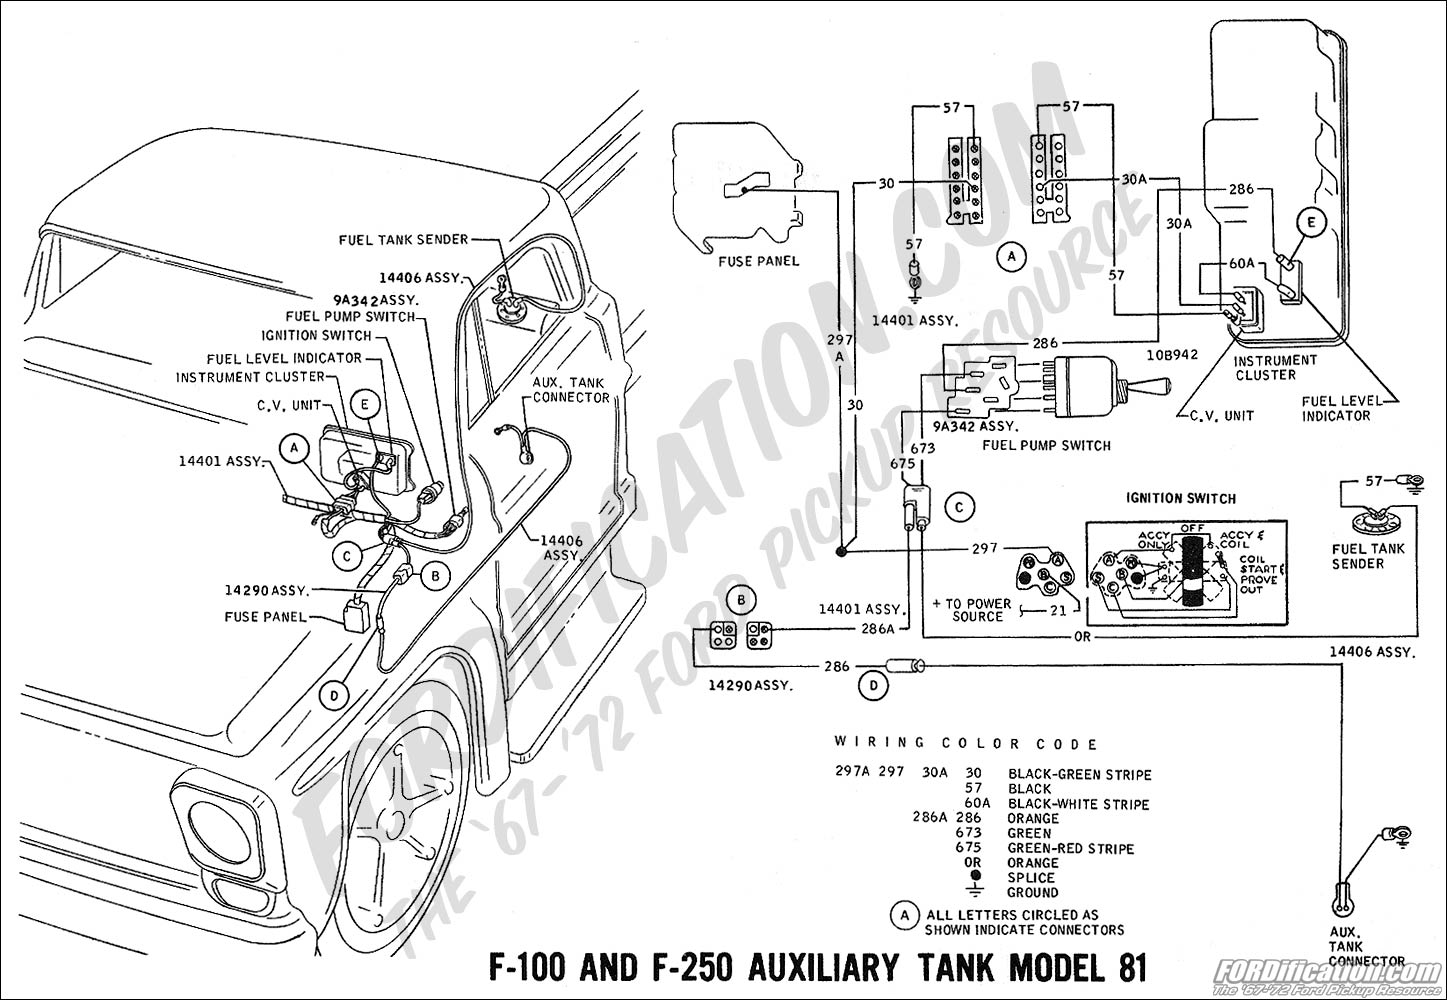 1979 ford f150 fuse box diagram wiring diagram online 1969 Cadillac Fuse Box Diagram 1969 ford f100 ranger on 1977 ford f 100 wiring diagram wiring 1979 ford f150 engine swap 1979 ford f150 fuse box diagram